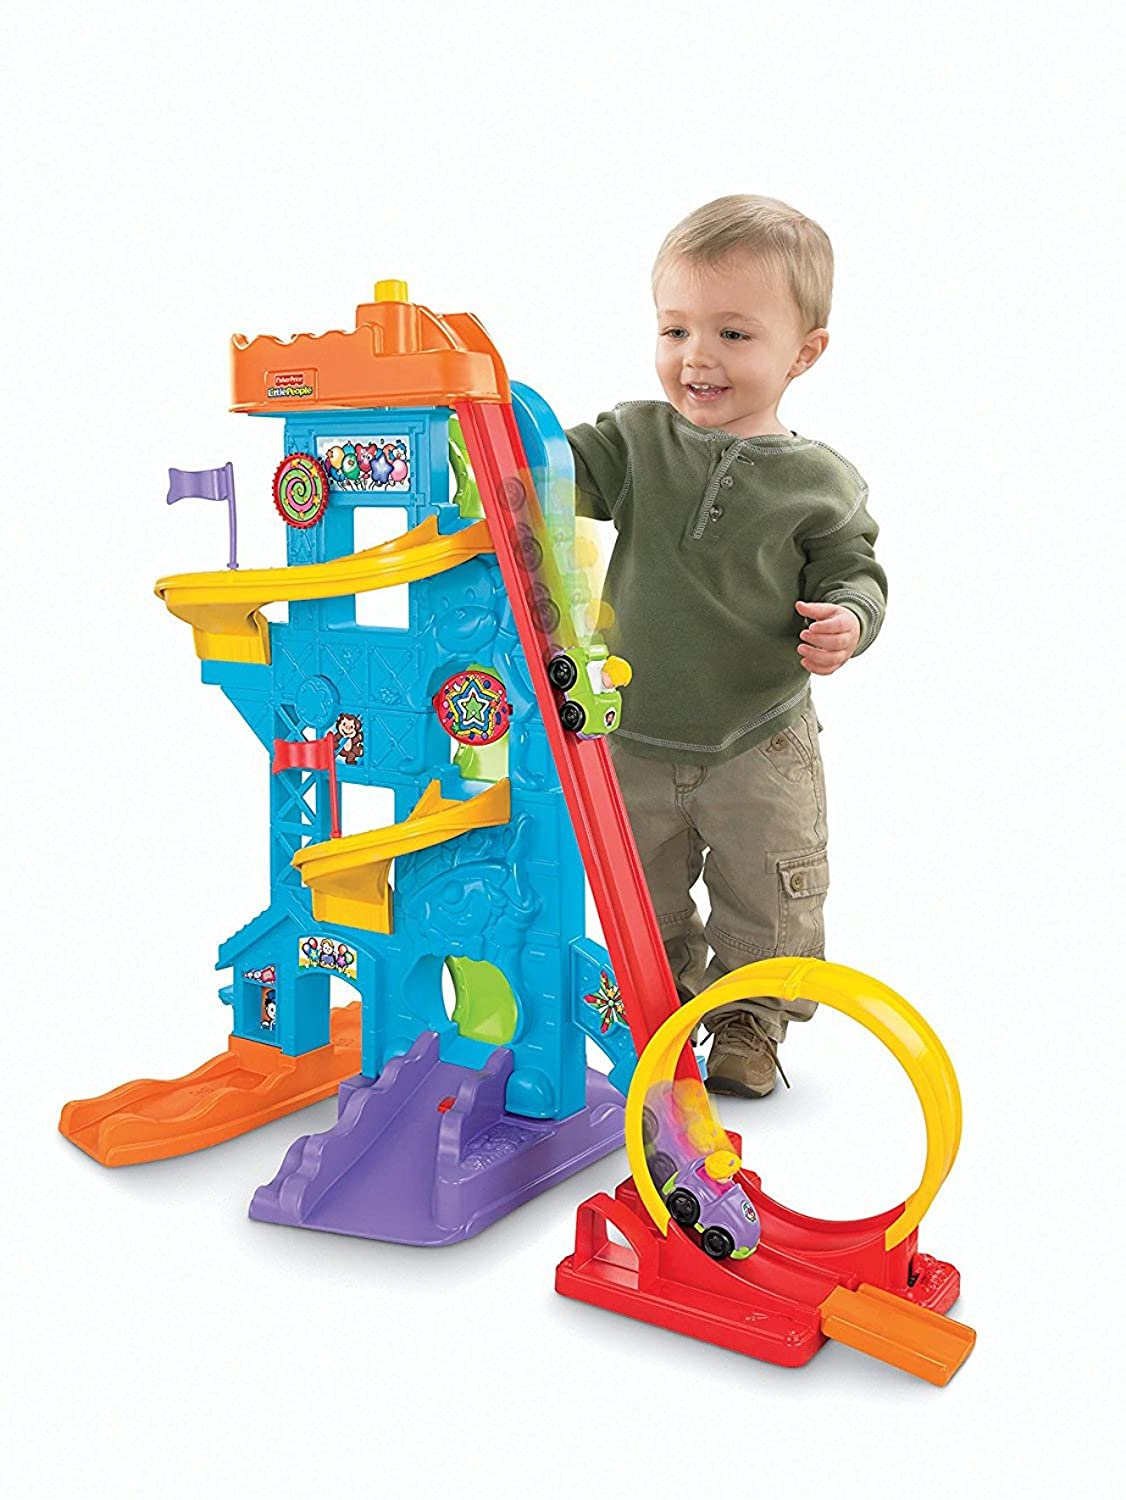 Popular Toys For Boys 8 And Under : Best gifts for year old boys in itsy bitsy fun